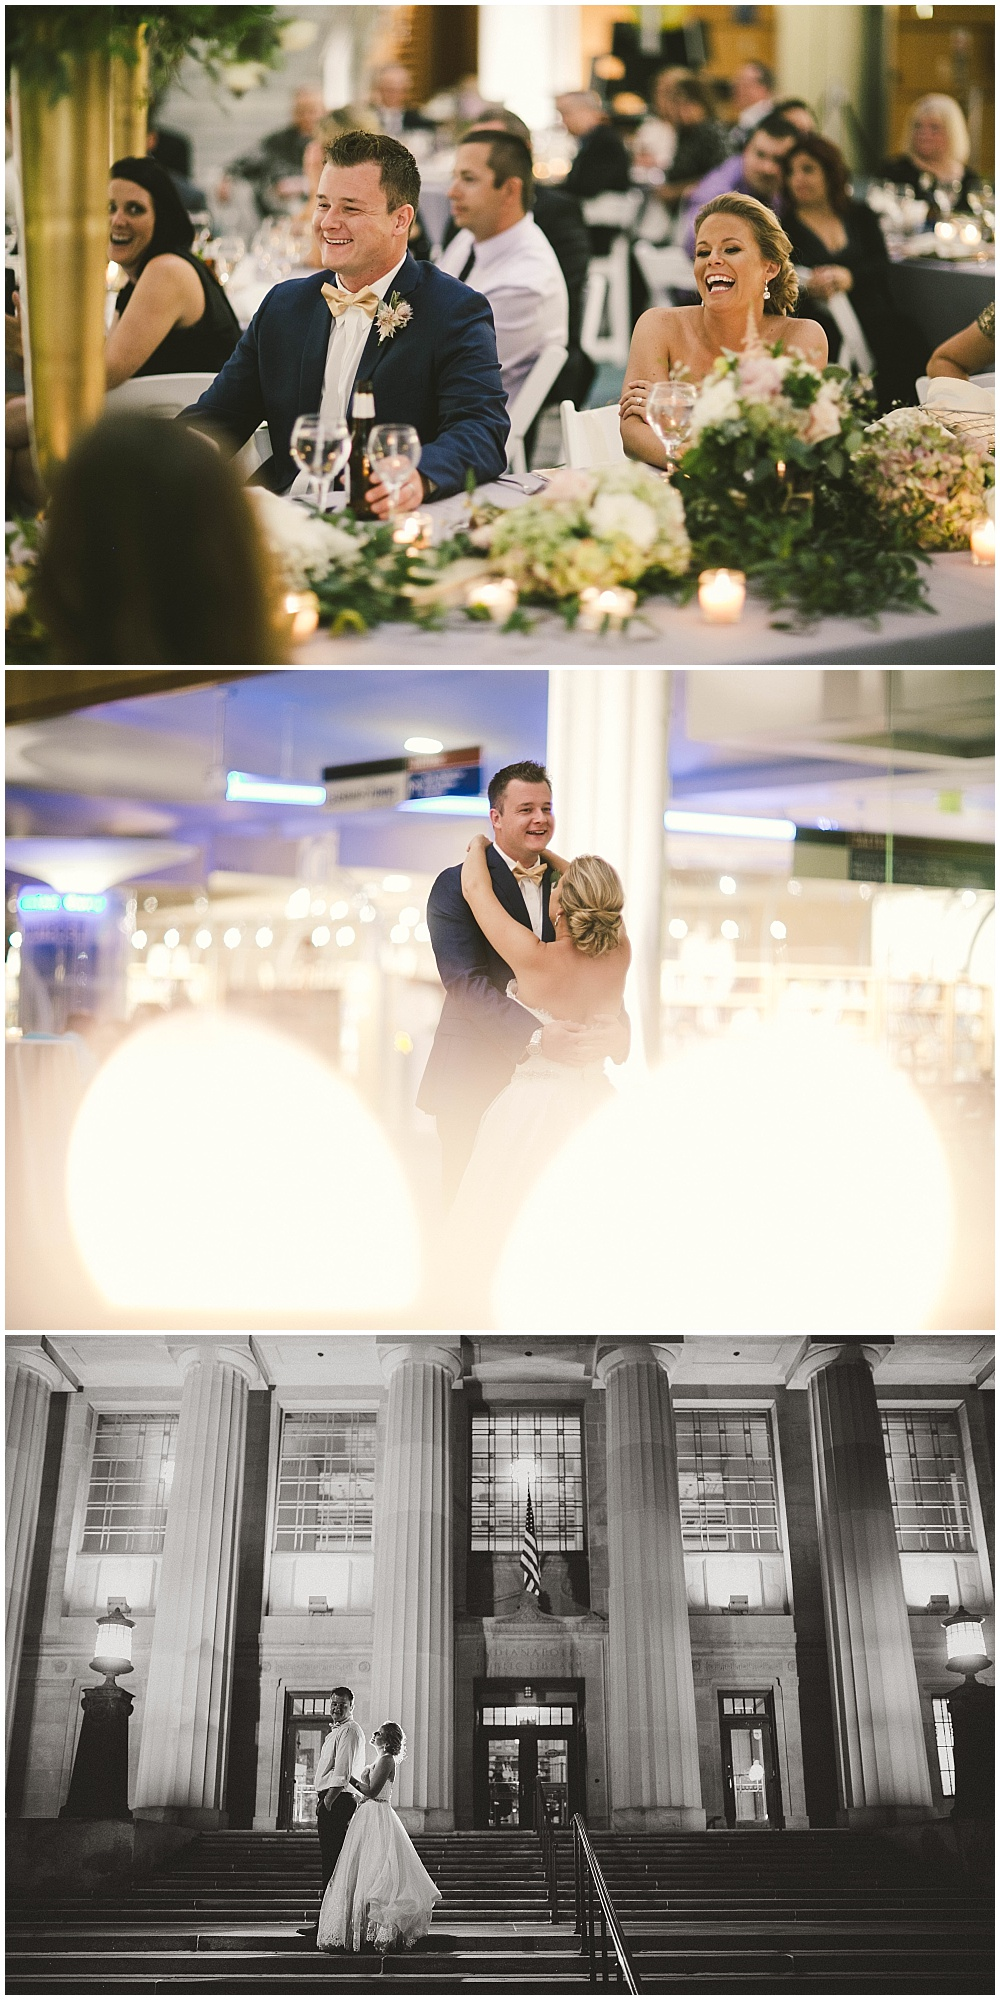 Library Wedding | Indianapolis Central Library Wedding by Jennifer Van Elk Photography & Jessica Dum Wedding Coordination